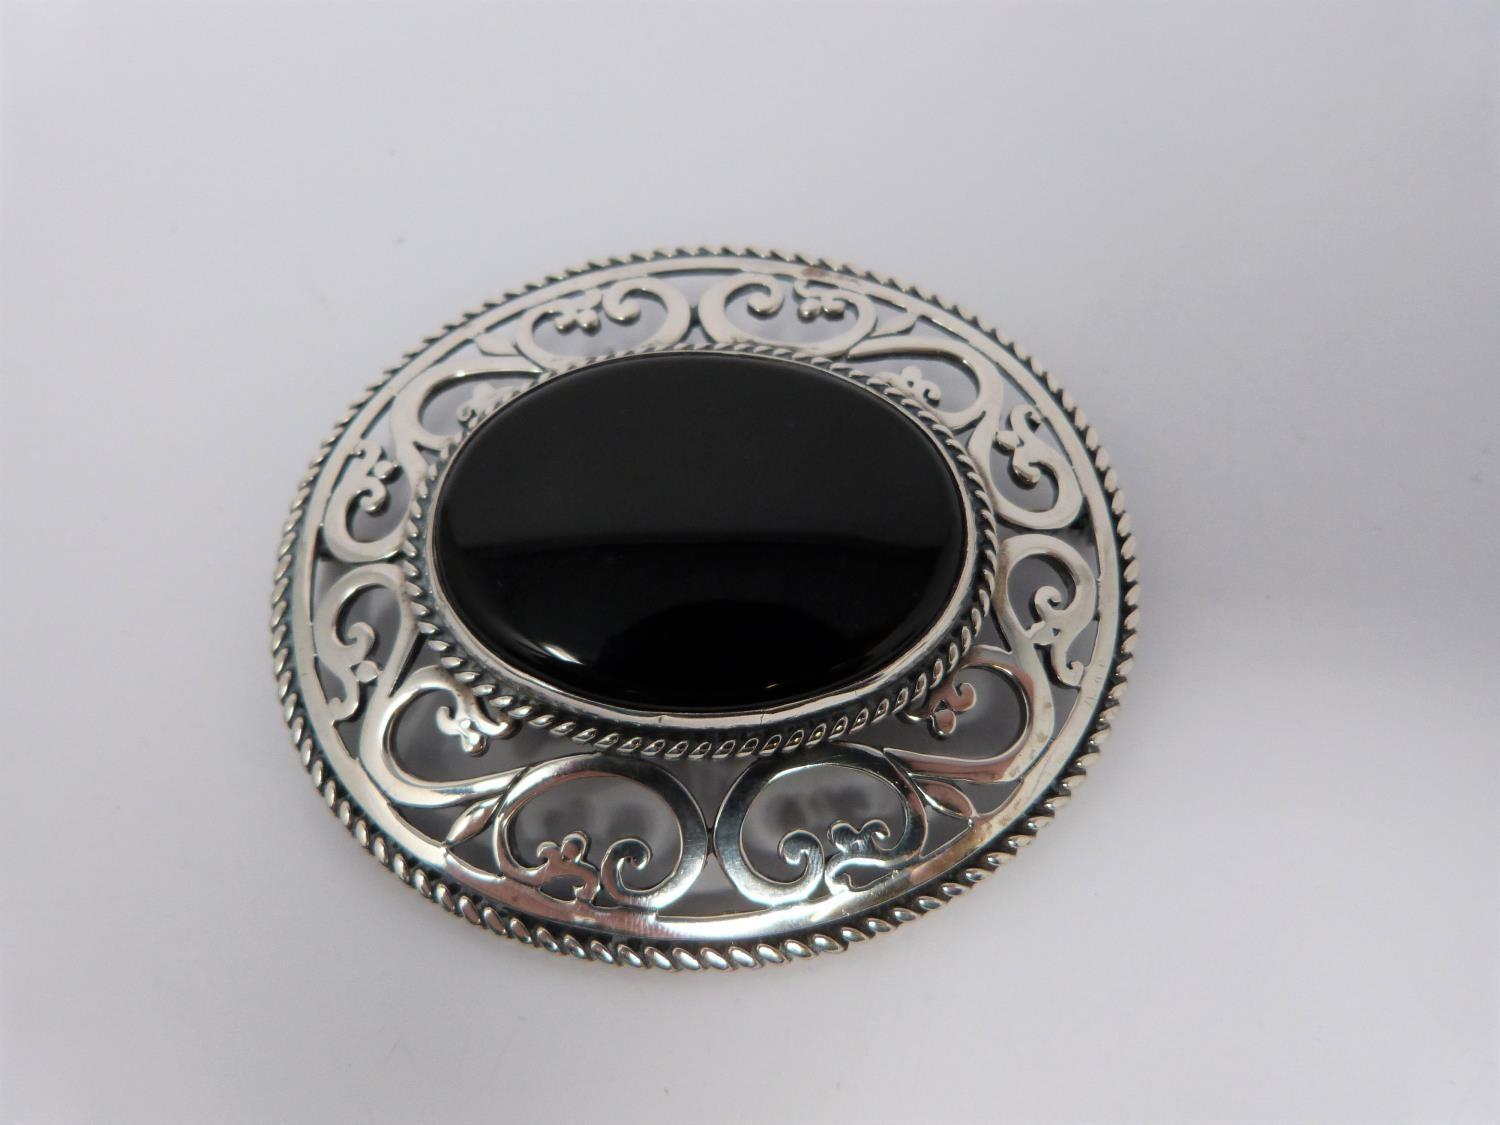 Large jet and hallmarked silver pierced brooch, with a pierced white metal brooch, small silver - Image 3 of 7